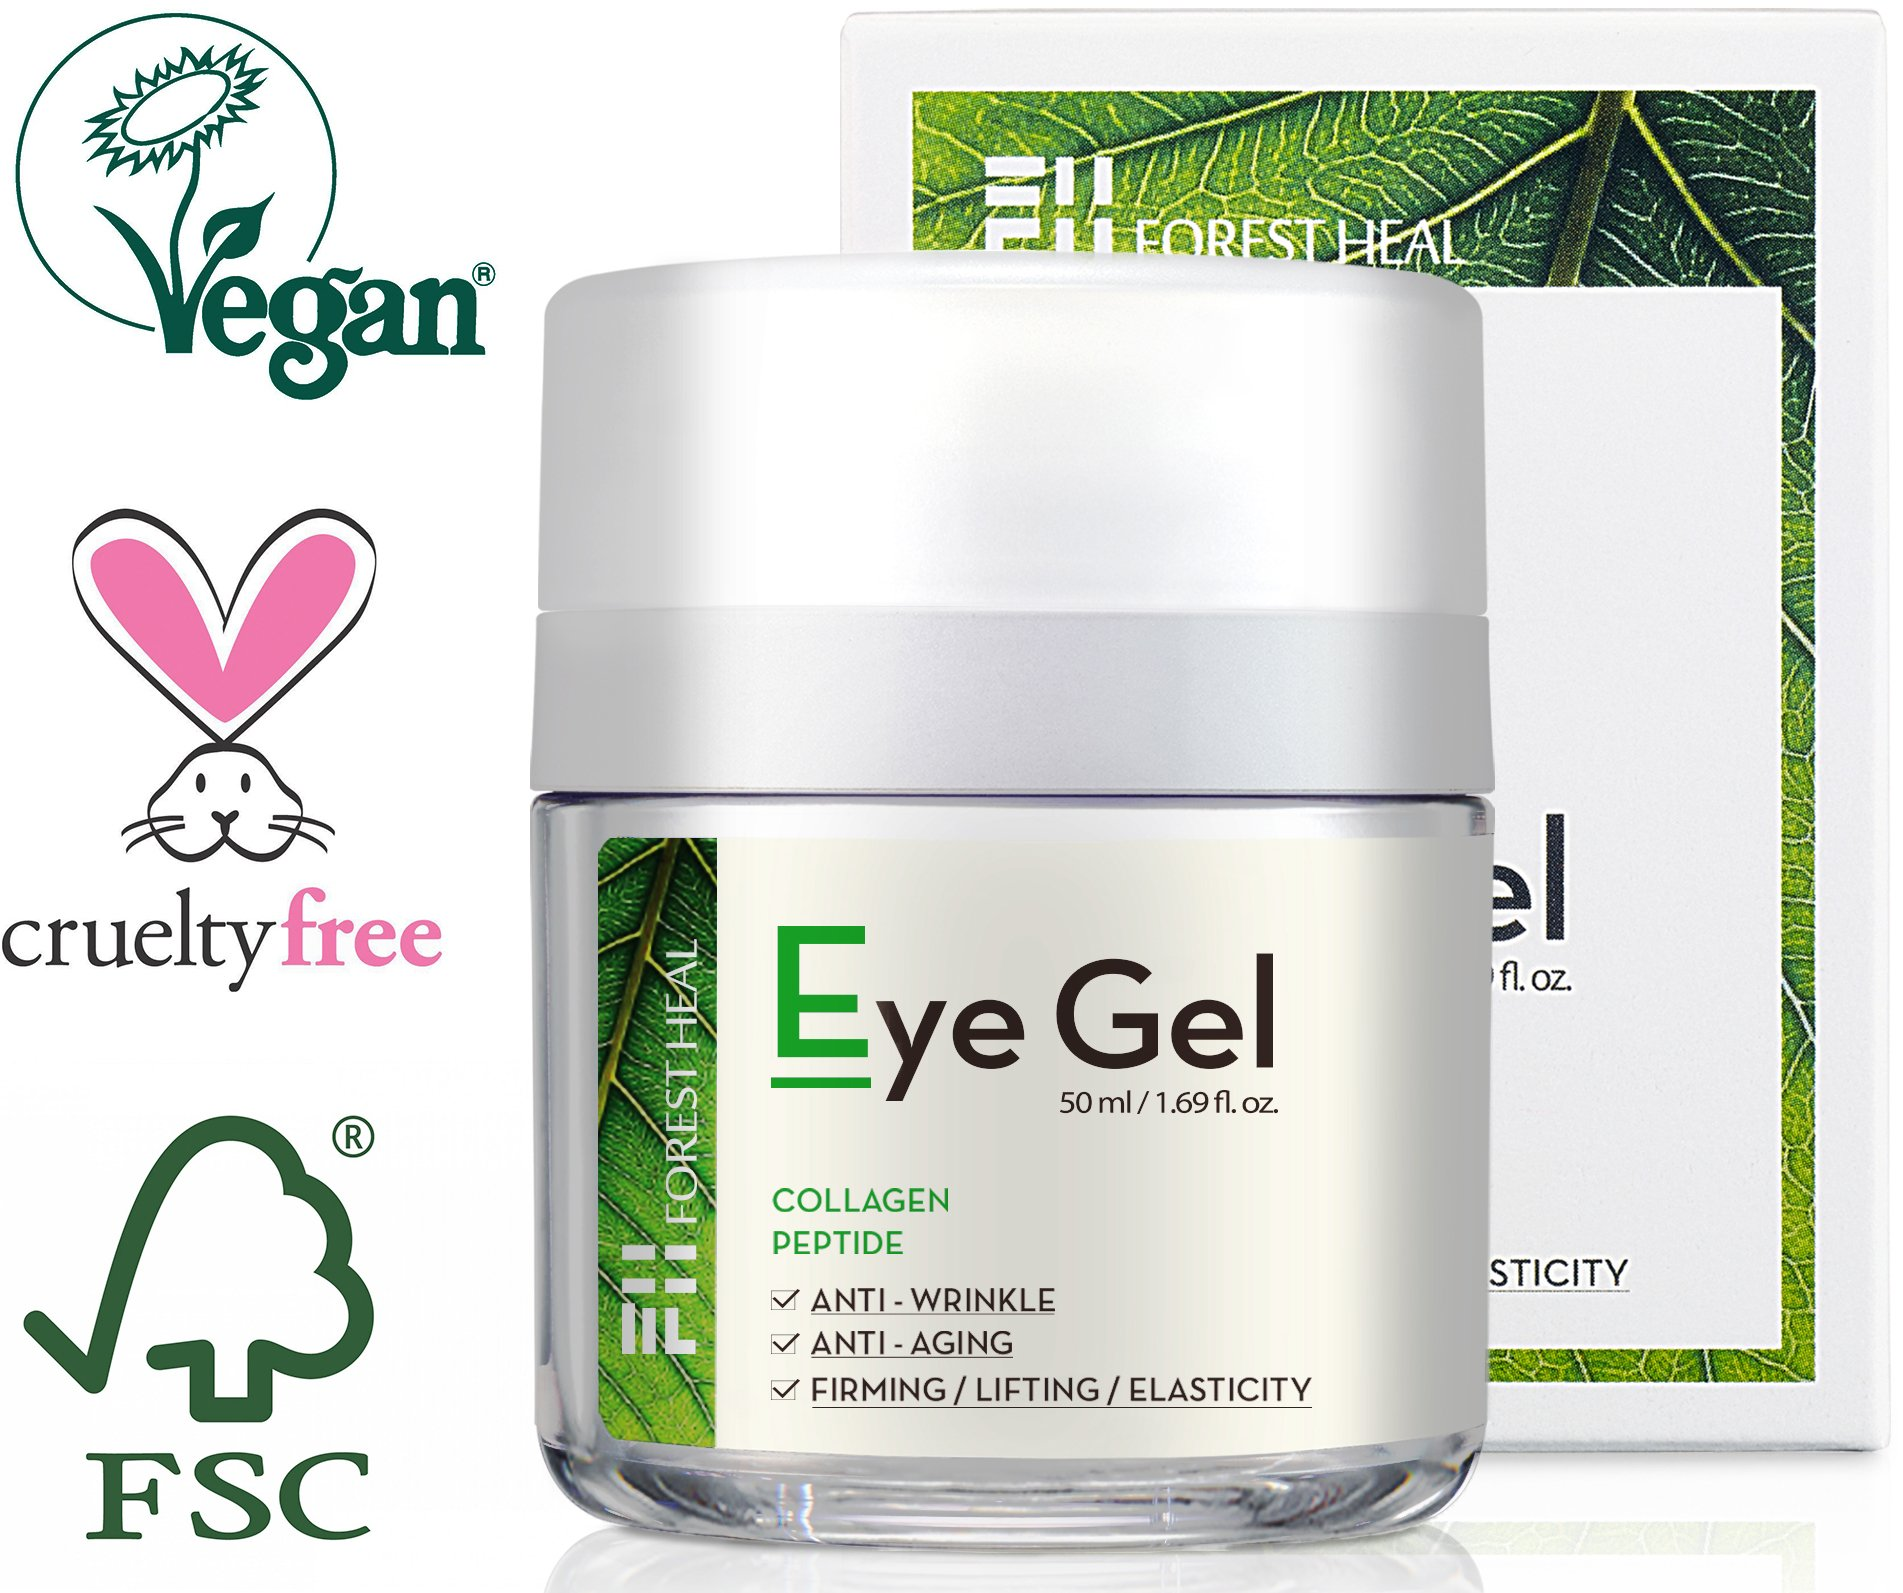 Forest Heal Eye Gel With Collagen Peptides and Niacinamide - Natural Anti Aging, Anti Wrinkle Moisturizer For Under and Around Eyes - 1.69 fl.oz. by Forest Heal (Image #1)